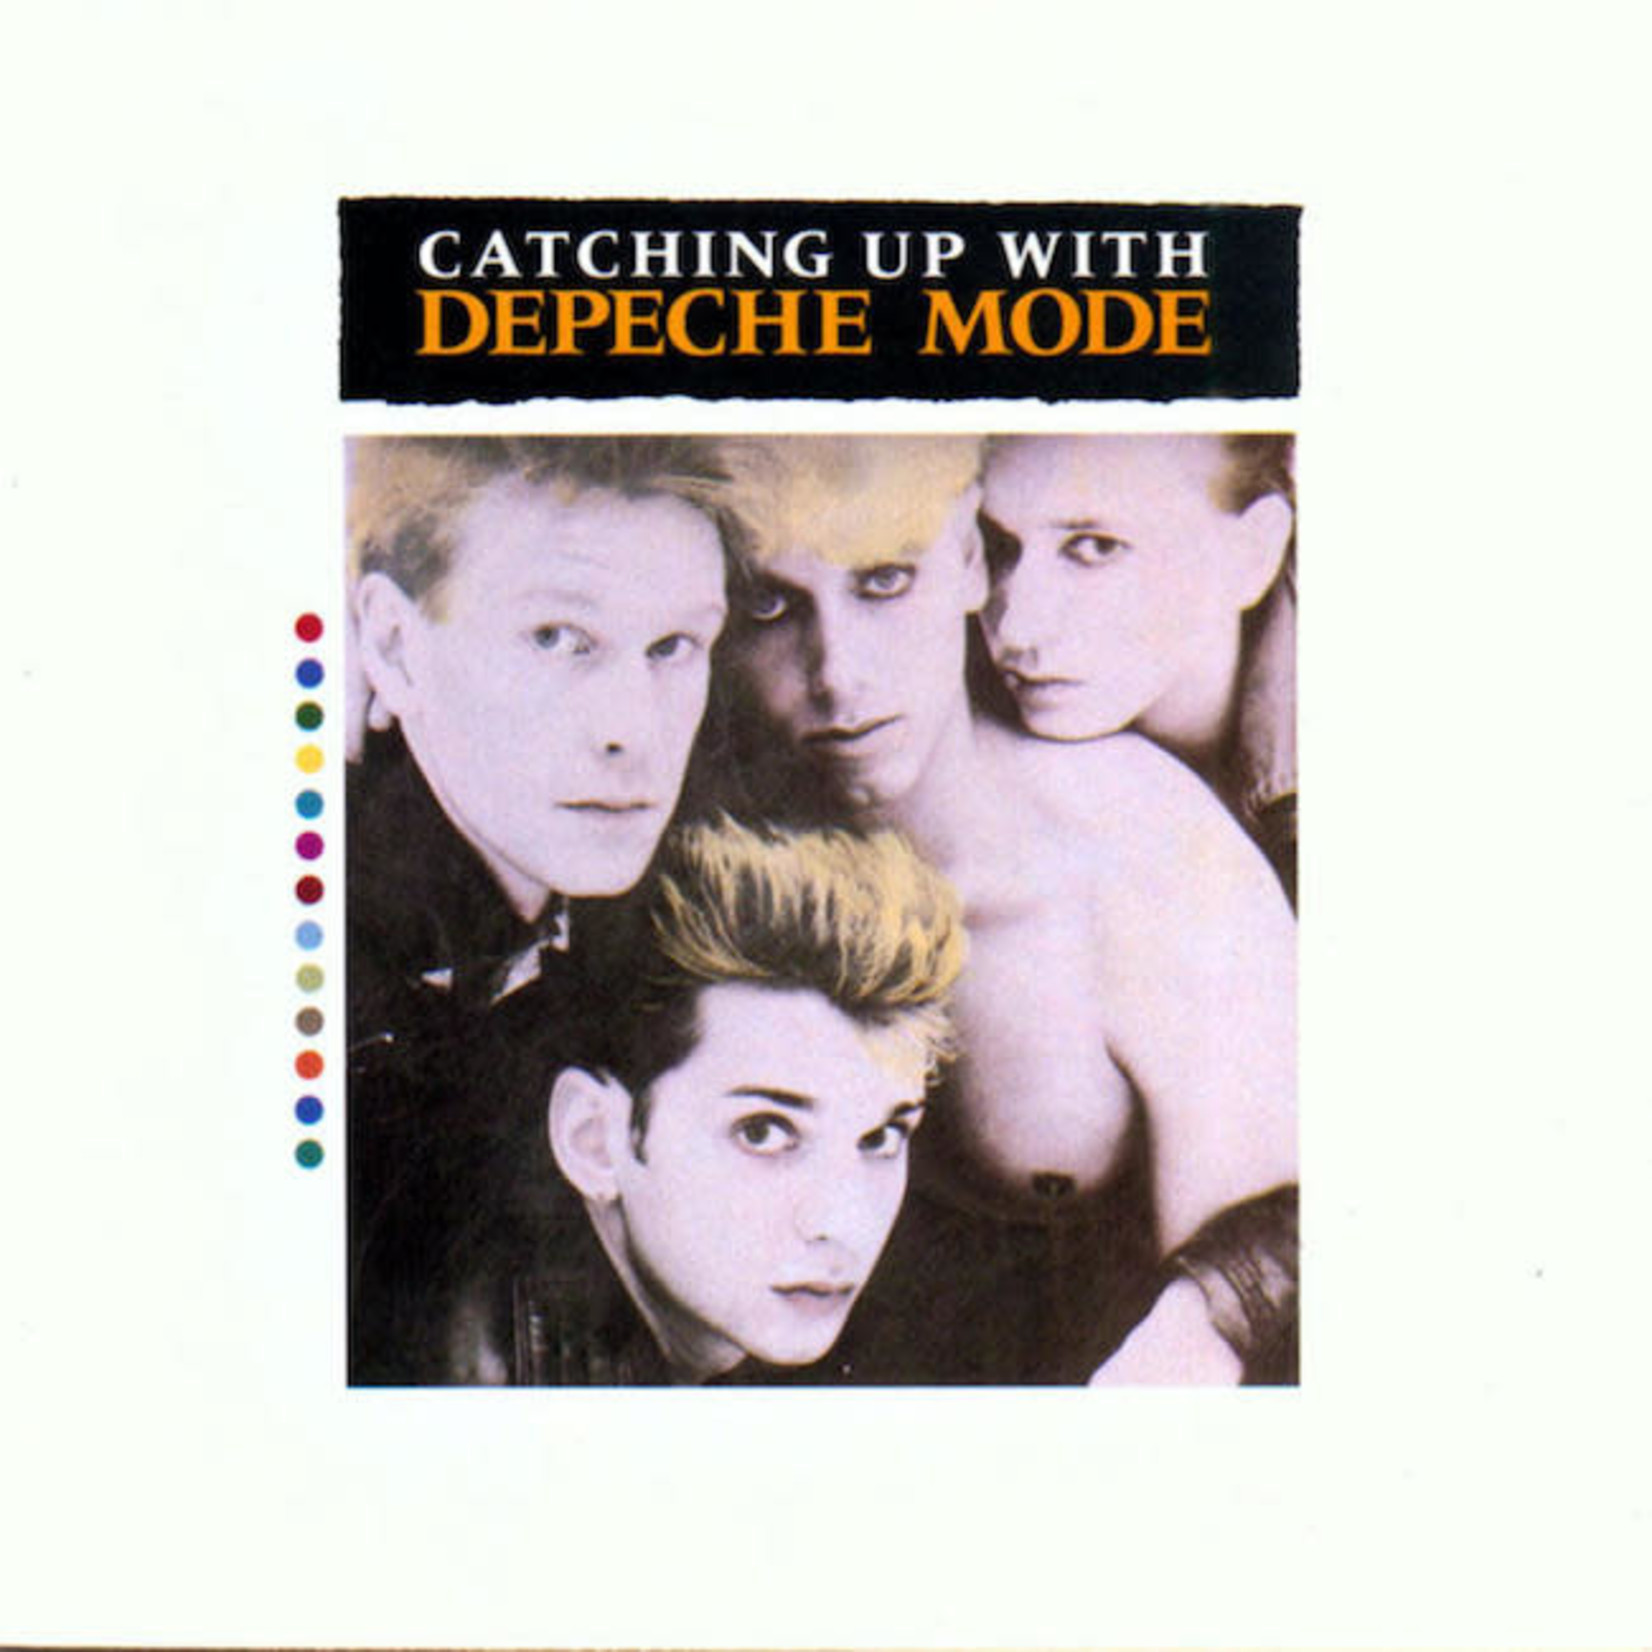 [Vintage] Depeche Mode: Catching Up With